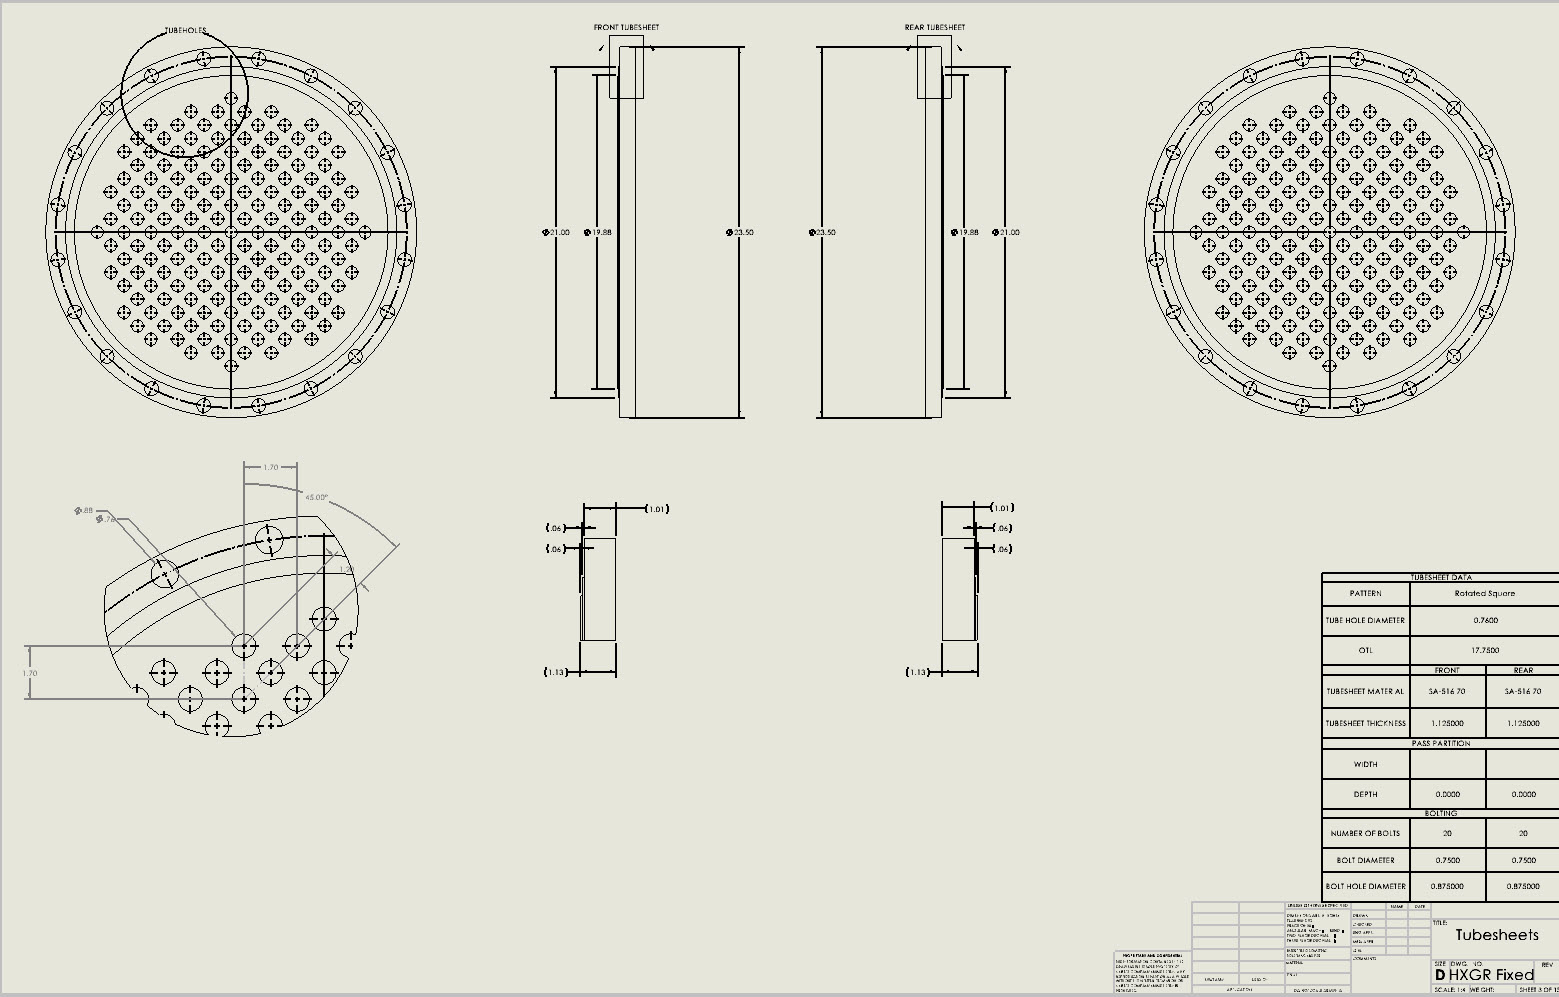 Tube sheet detail drawings are generated by the Codeware Interface